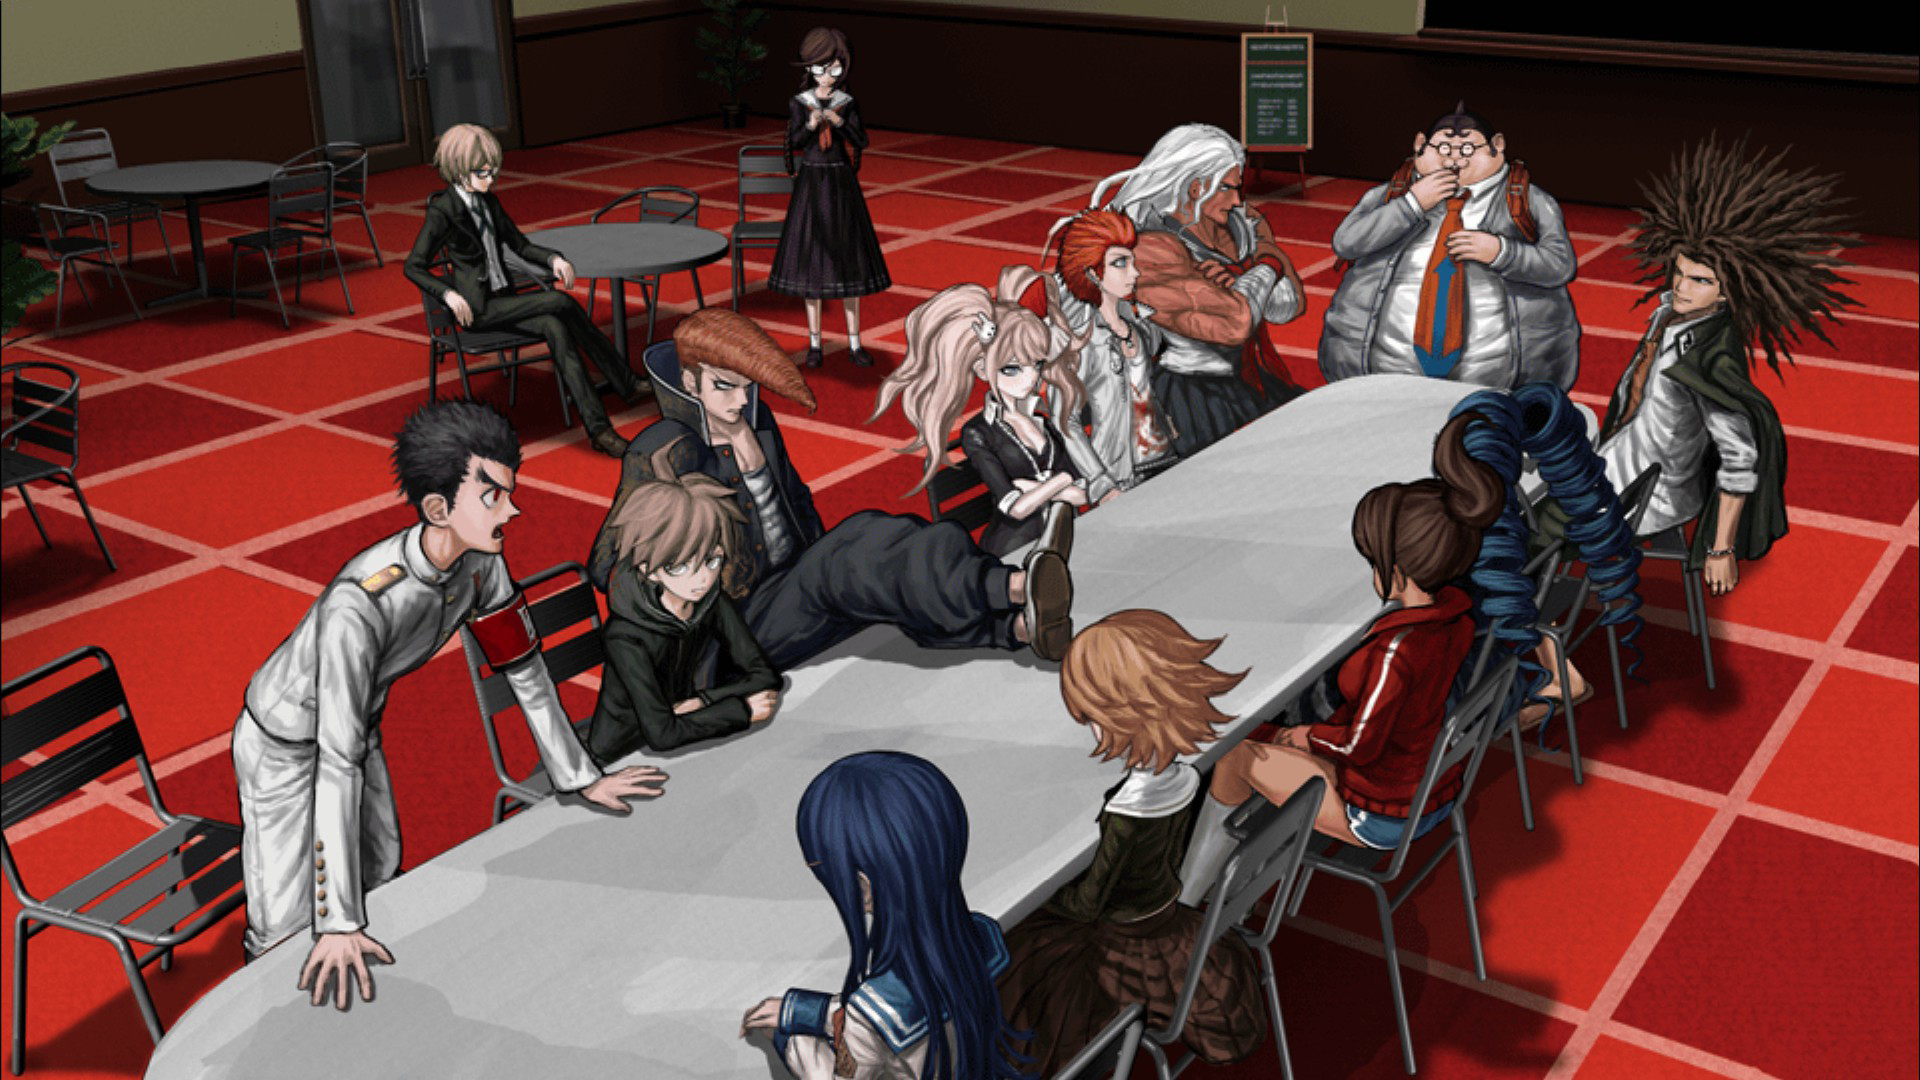 Discussion At The Table Wallpaper From Danganronpa Trigger Happy